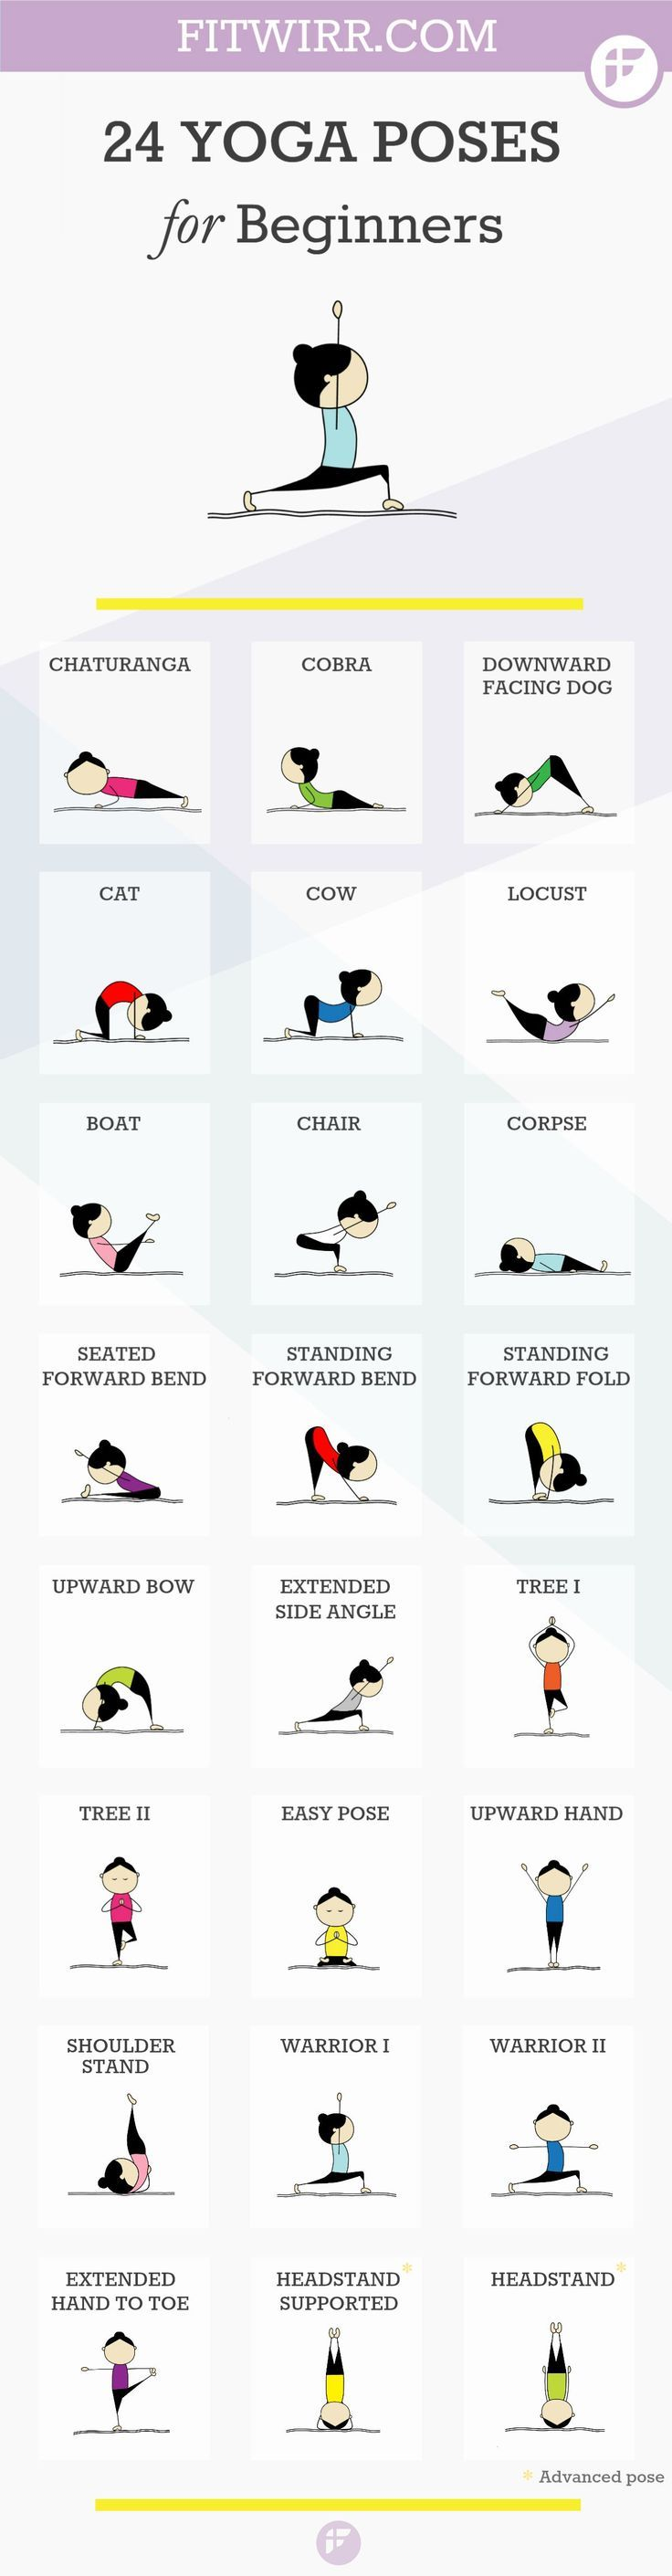 24 Yoga poses for beginners. Namaste :-). #yoga #meditation #health